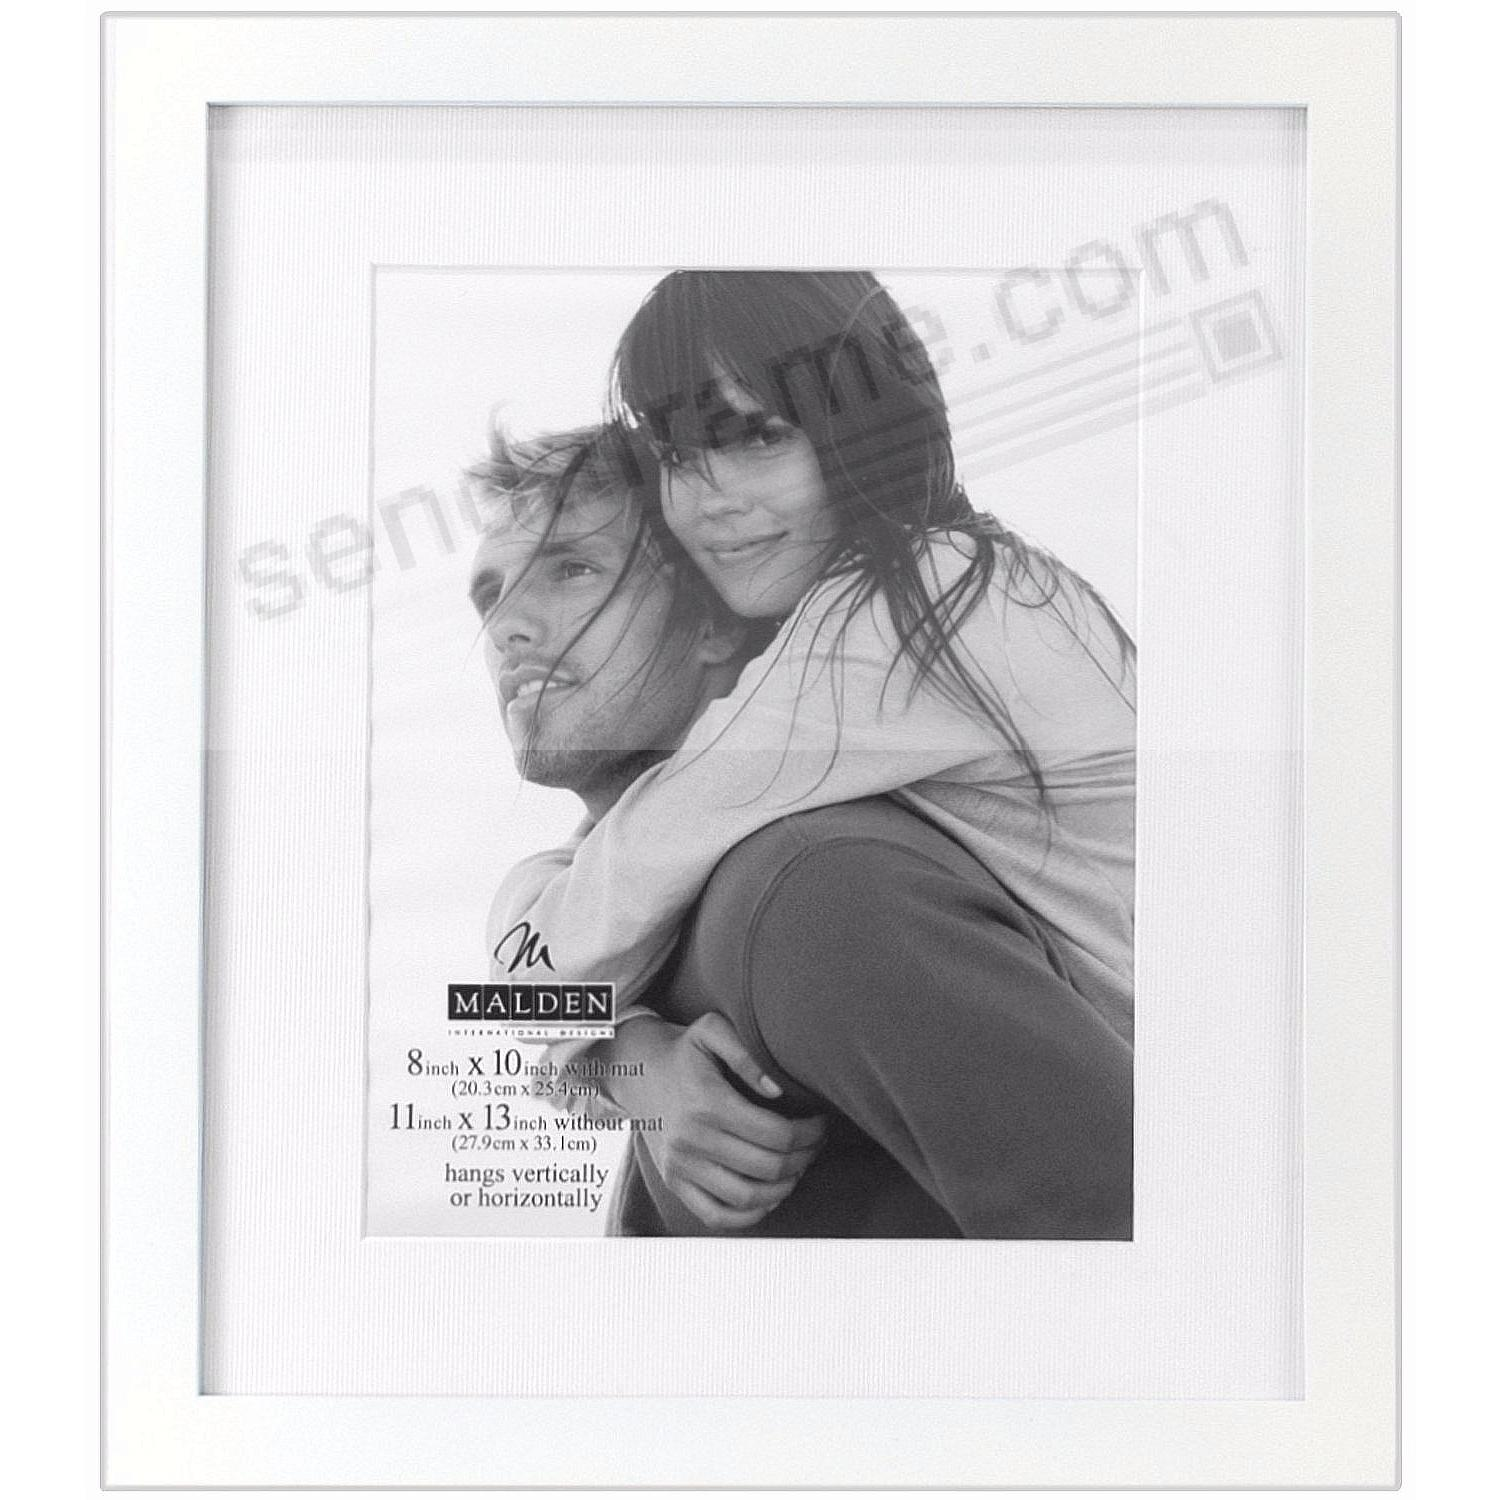 LINEAR WOOD White Frame with 11x13/8x10 coordinated mat by Malden®